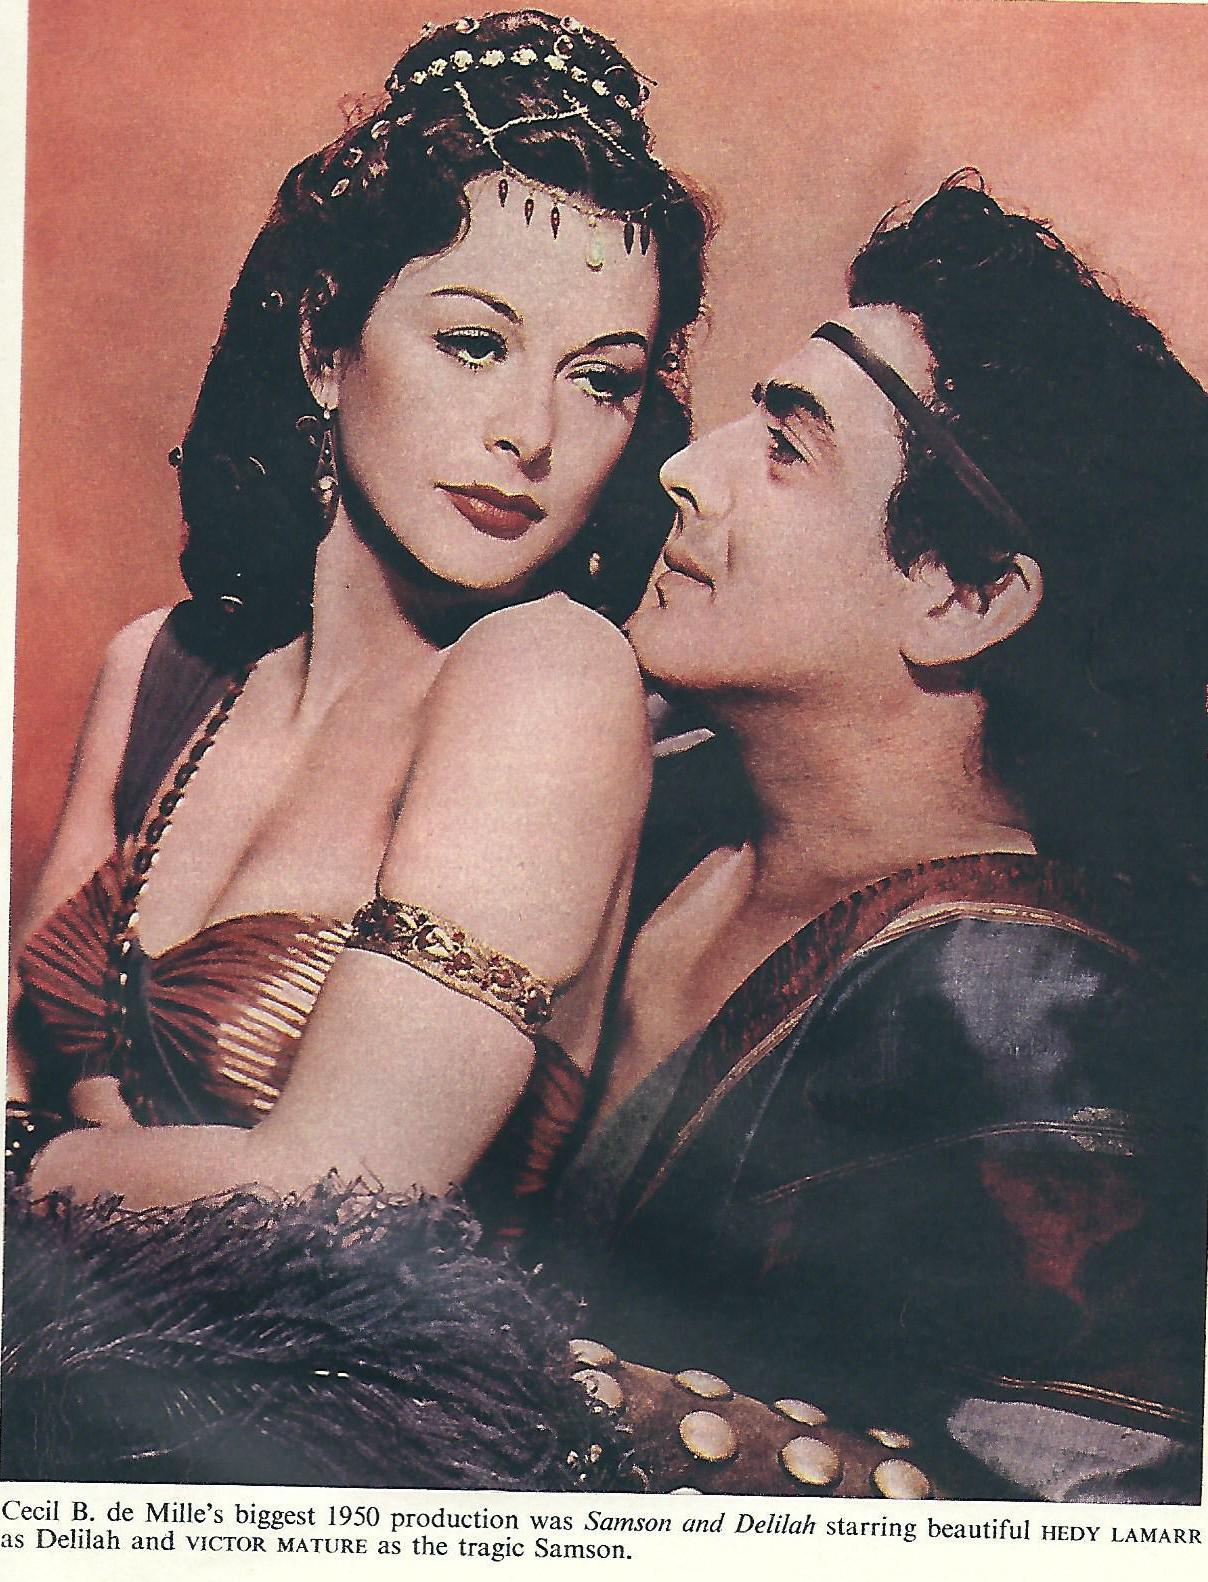 blog archive » a classic film still – victor mature and hedy lamarr